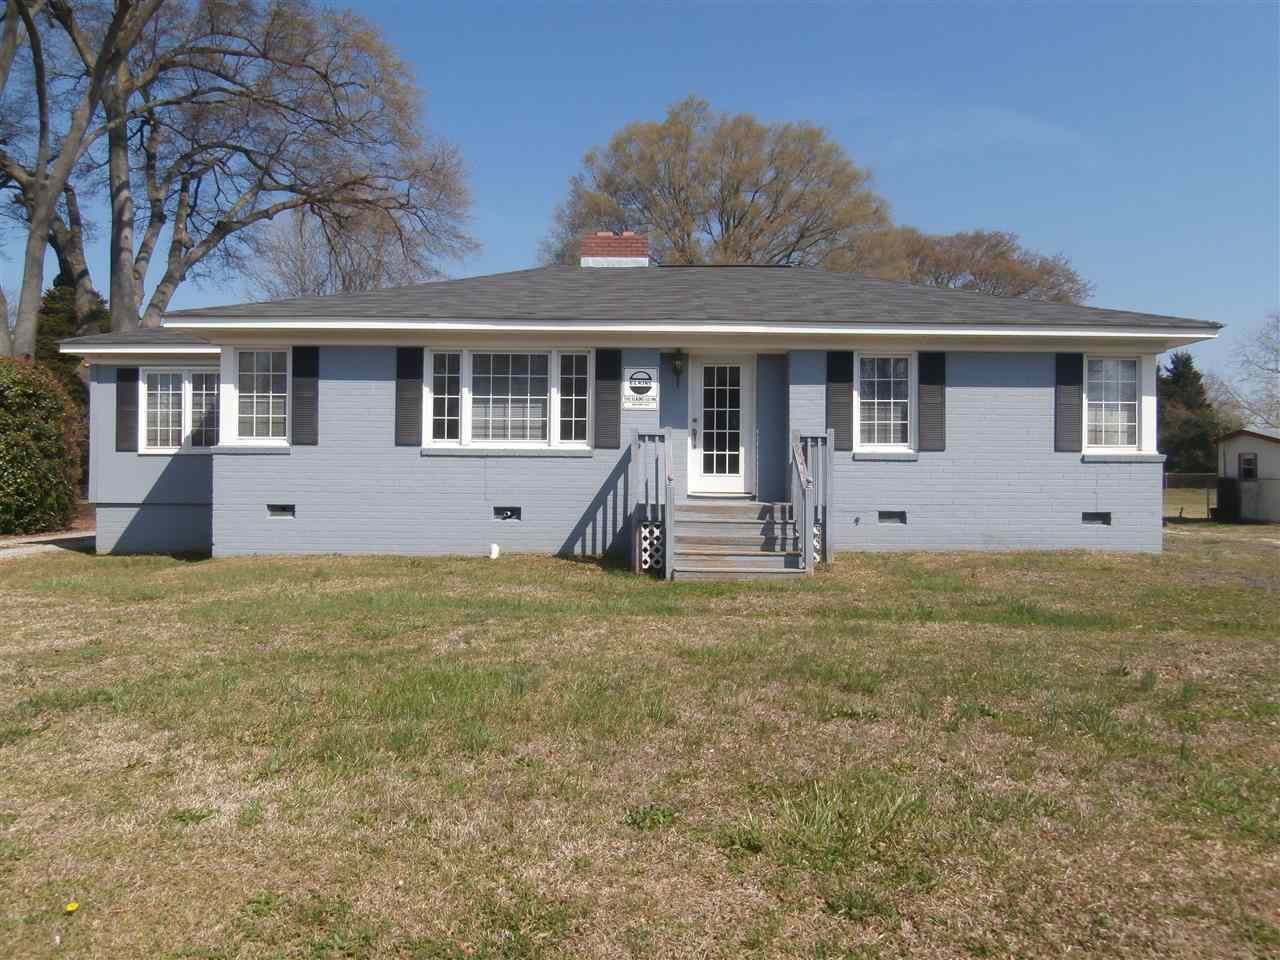 Commercial Property for Sale, ListingId:33553717, location: 2230 Celanese Rd Rock Hill 29732